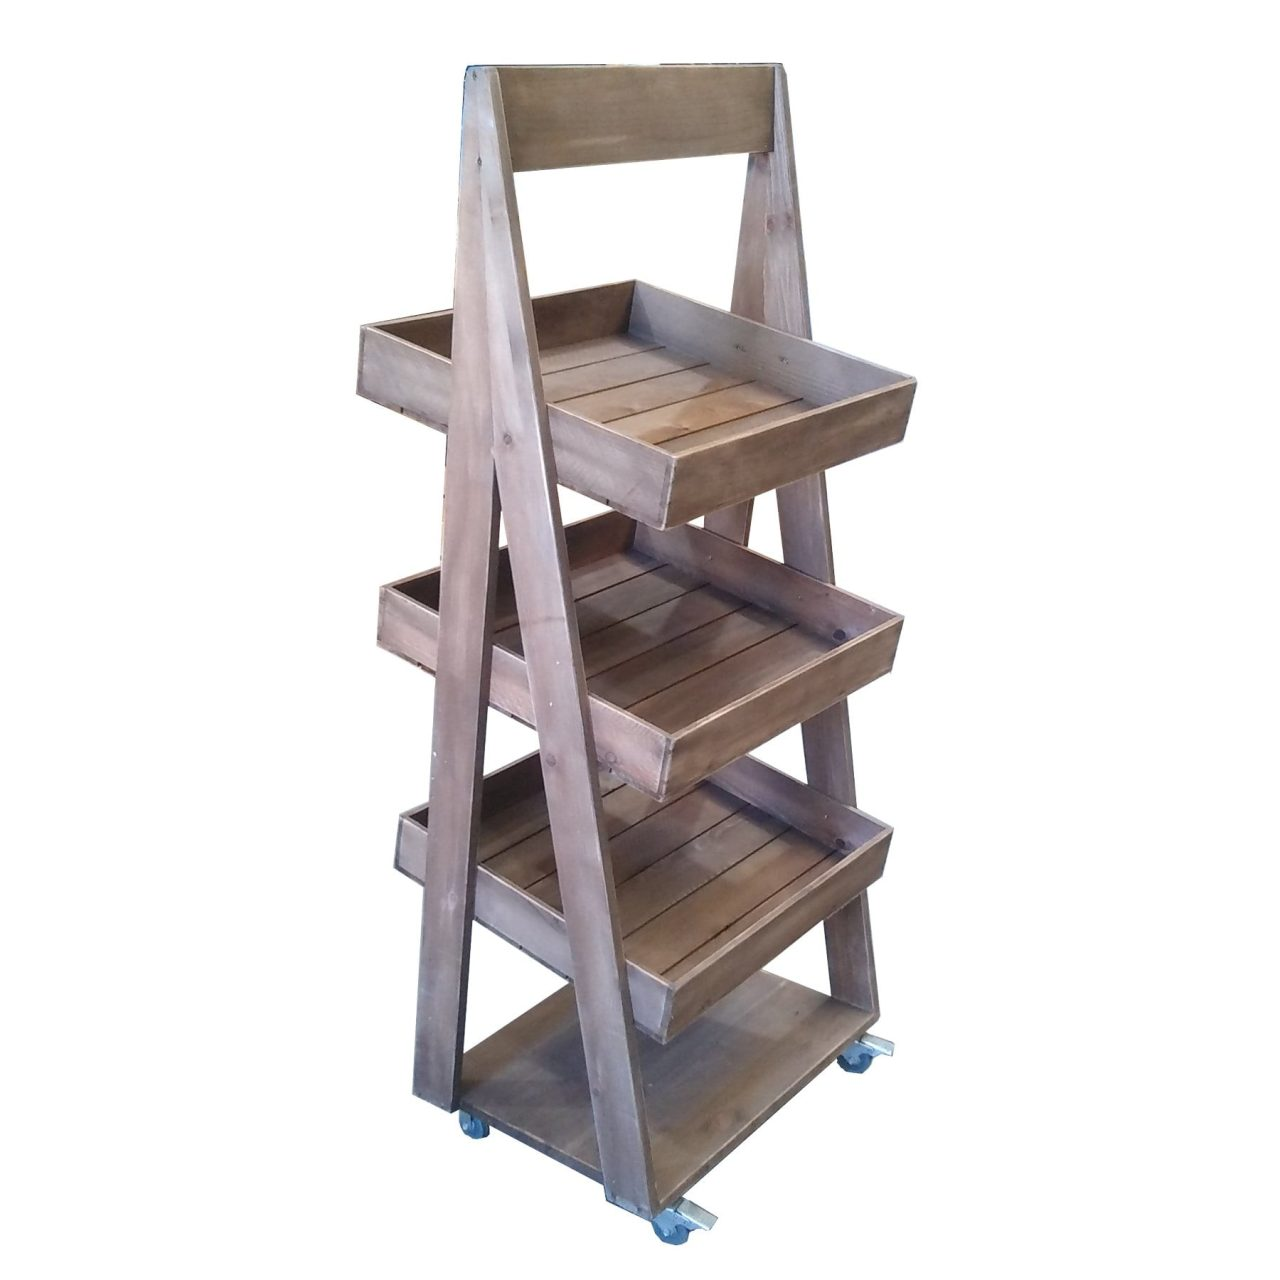 Exhibition Stand Frame : Mobile rustic tier slanted wooden a frame display stand